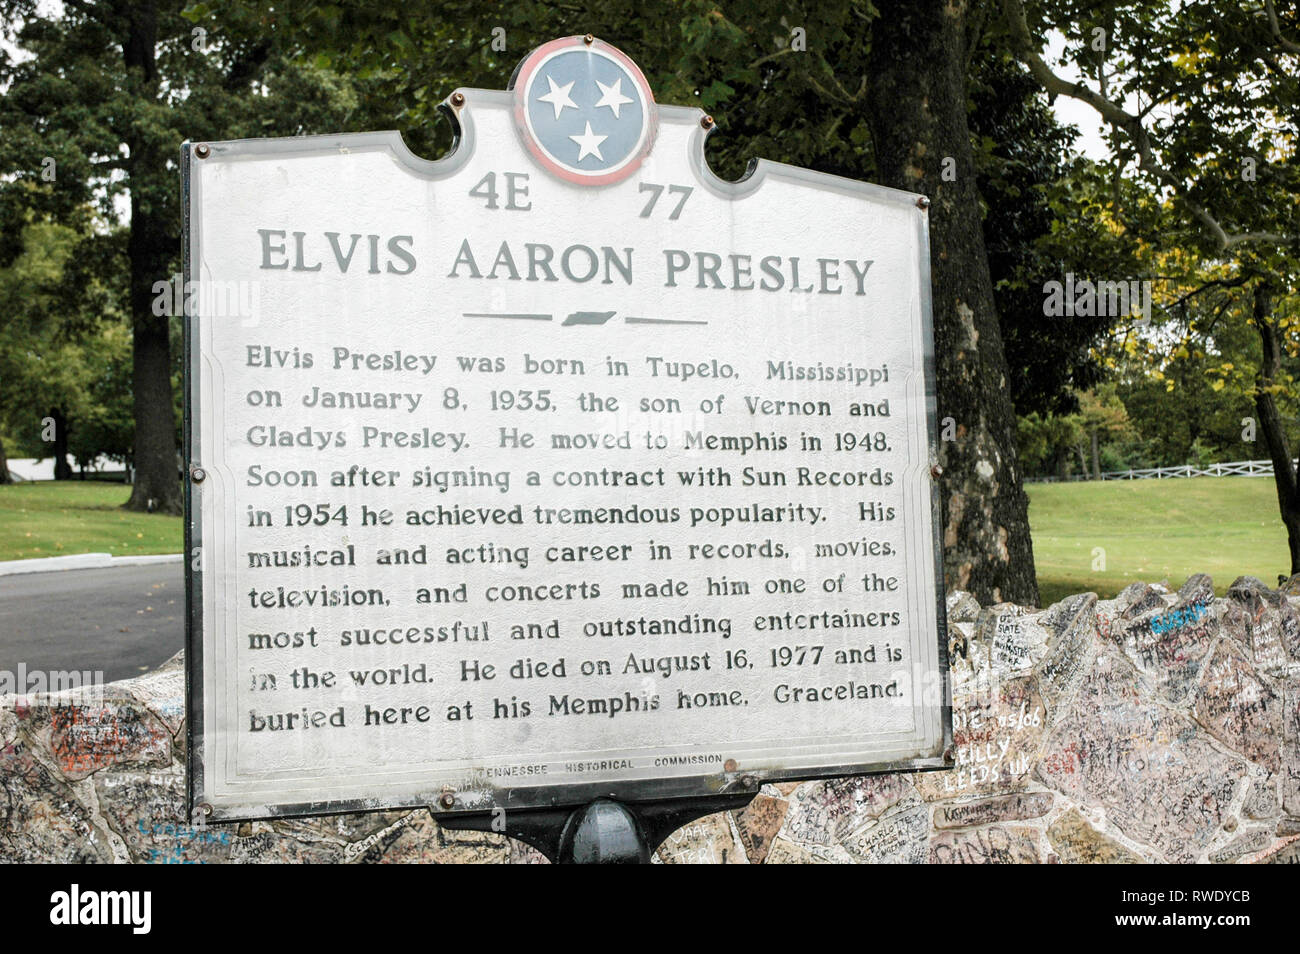 MEMPHIS, TN, USA: OCTOBER 11, 2006: A sign in front of Elvis Presley's Graceland shows the impact the late singer had on Memphis. Stock Photo